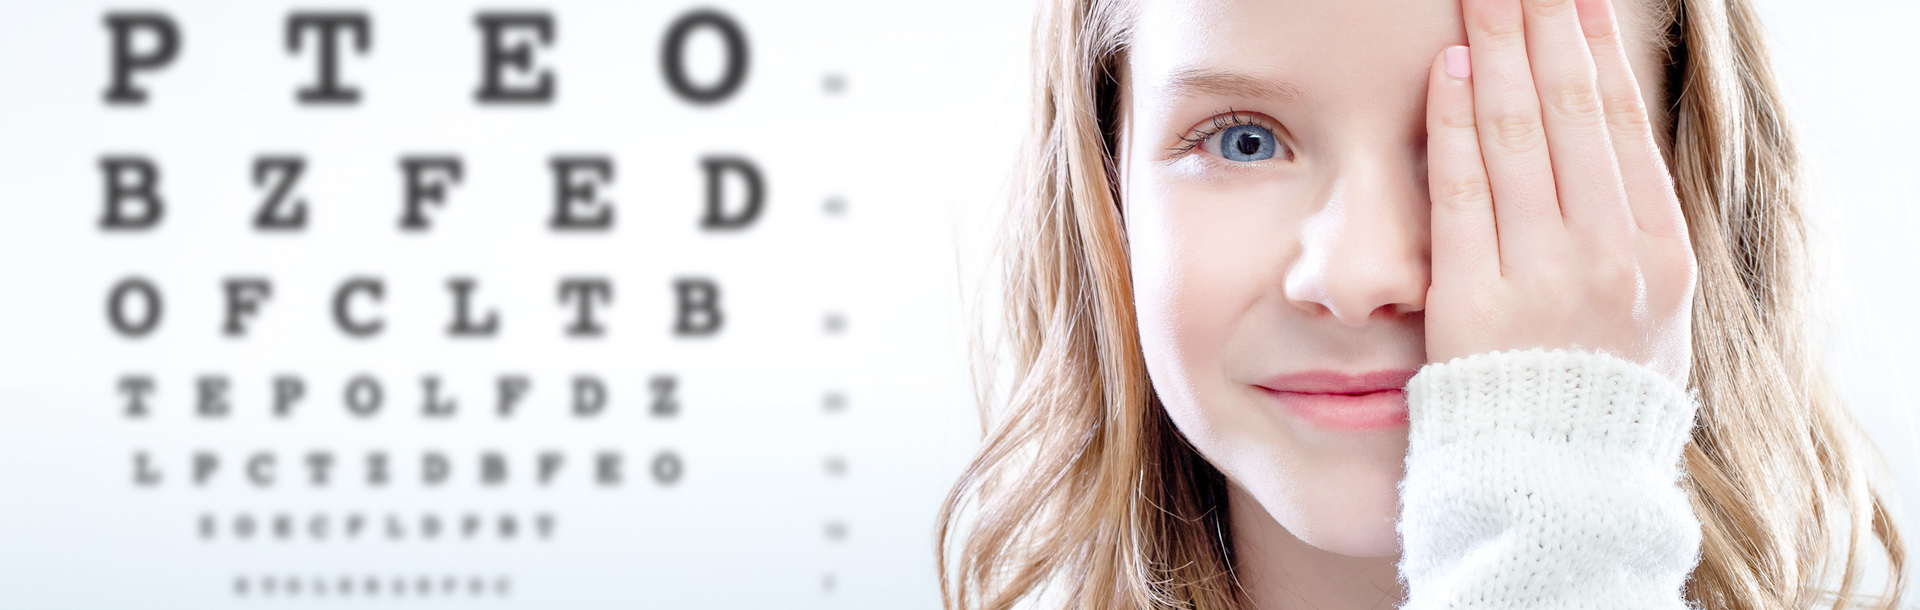 Young girl covering her left eye with an eye chart in the background